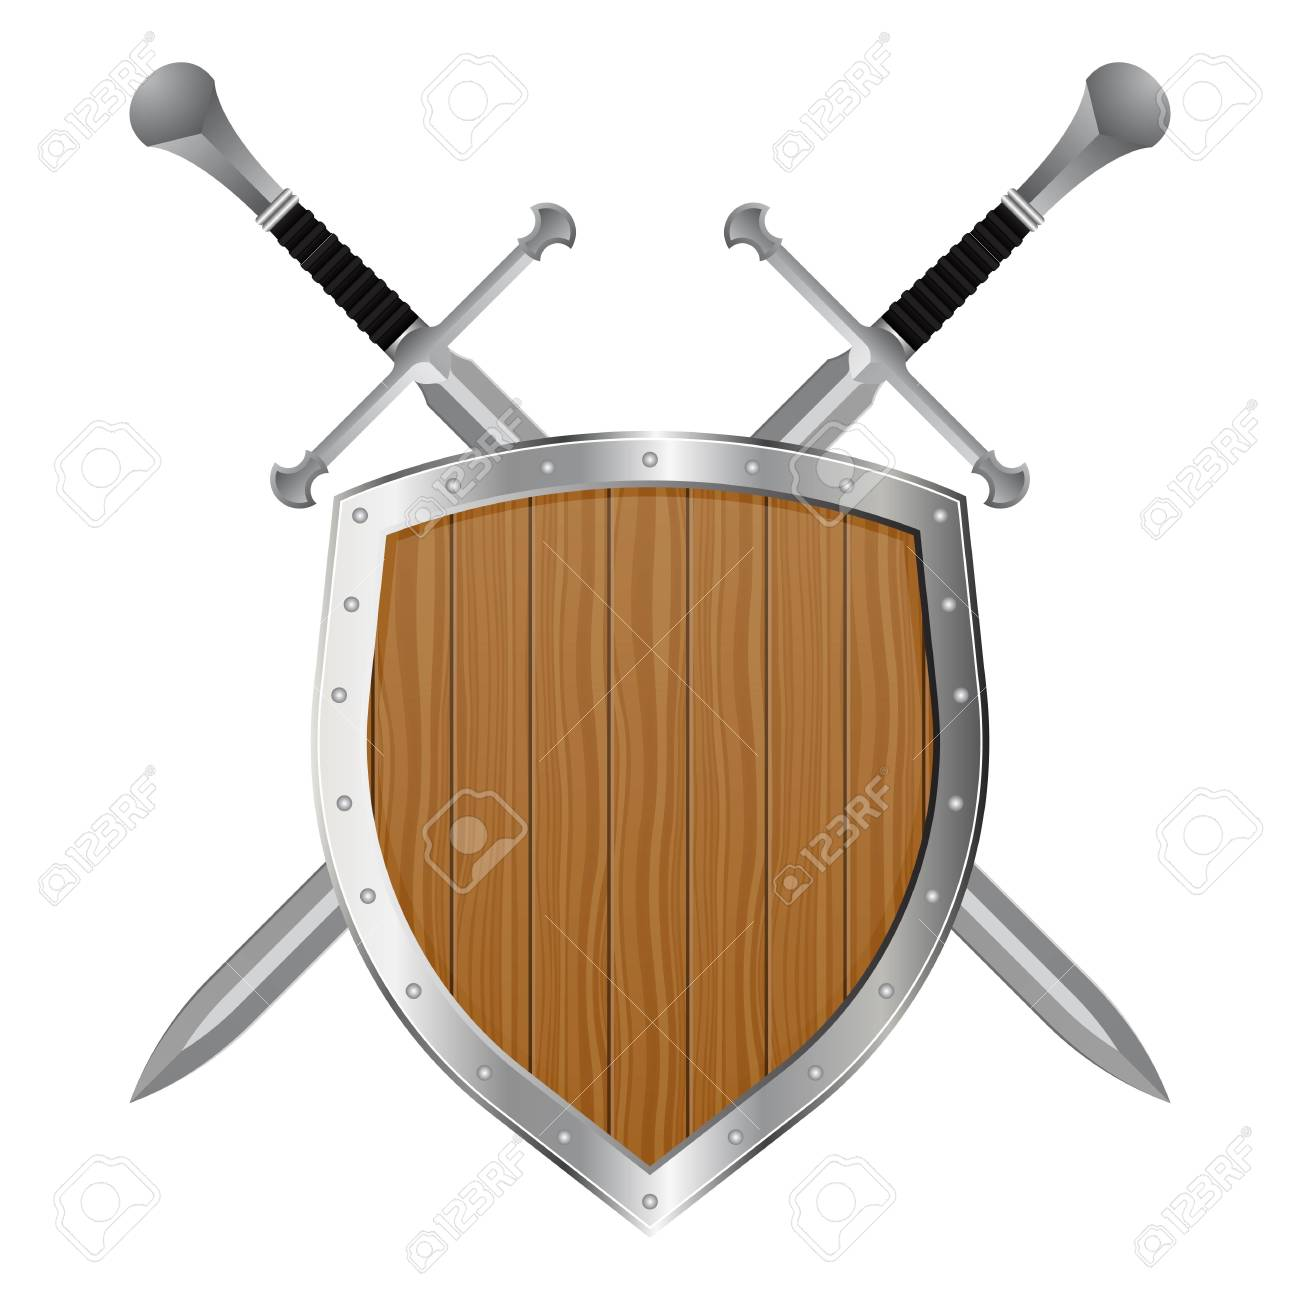 Medieval sword and shield vector illustration isolated on white background - 122876138